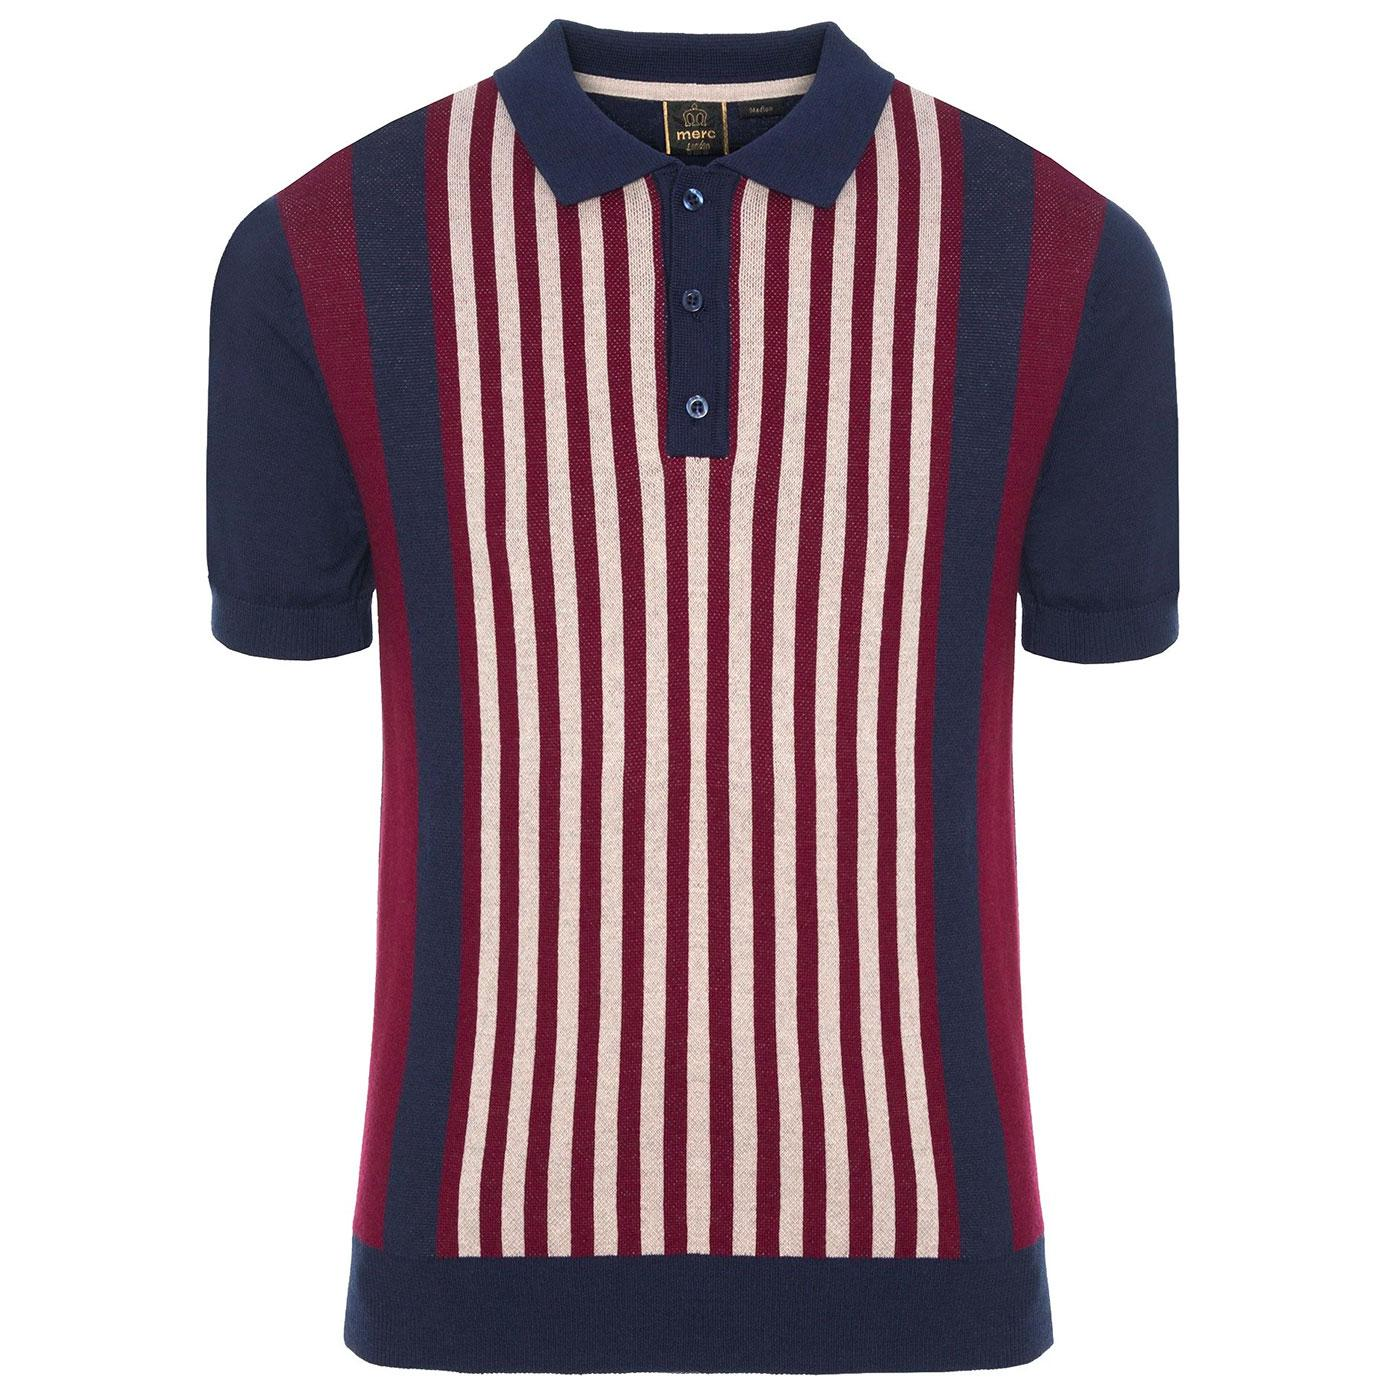 Northbrook MERC Retro 60s Mod Knitted Polo Shirt N